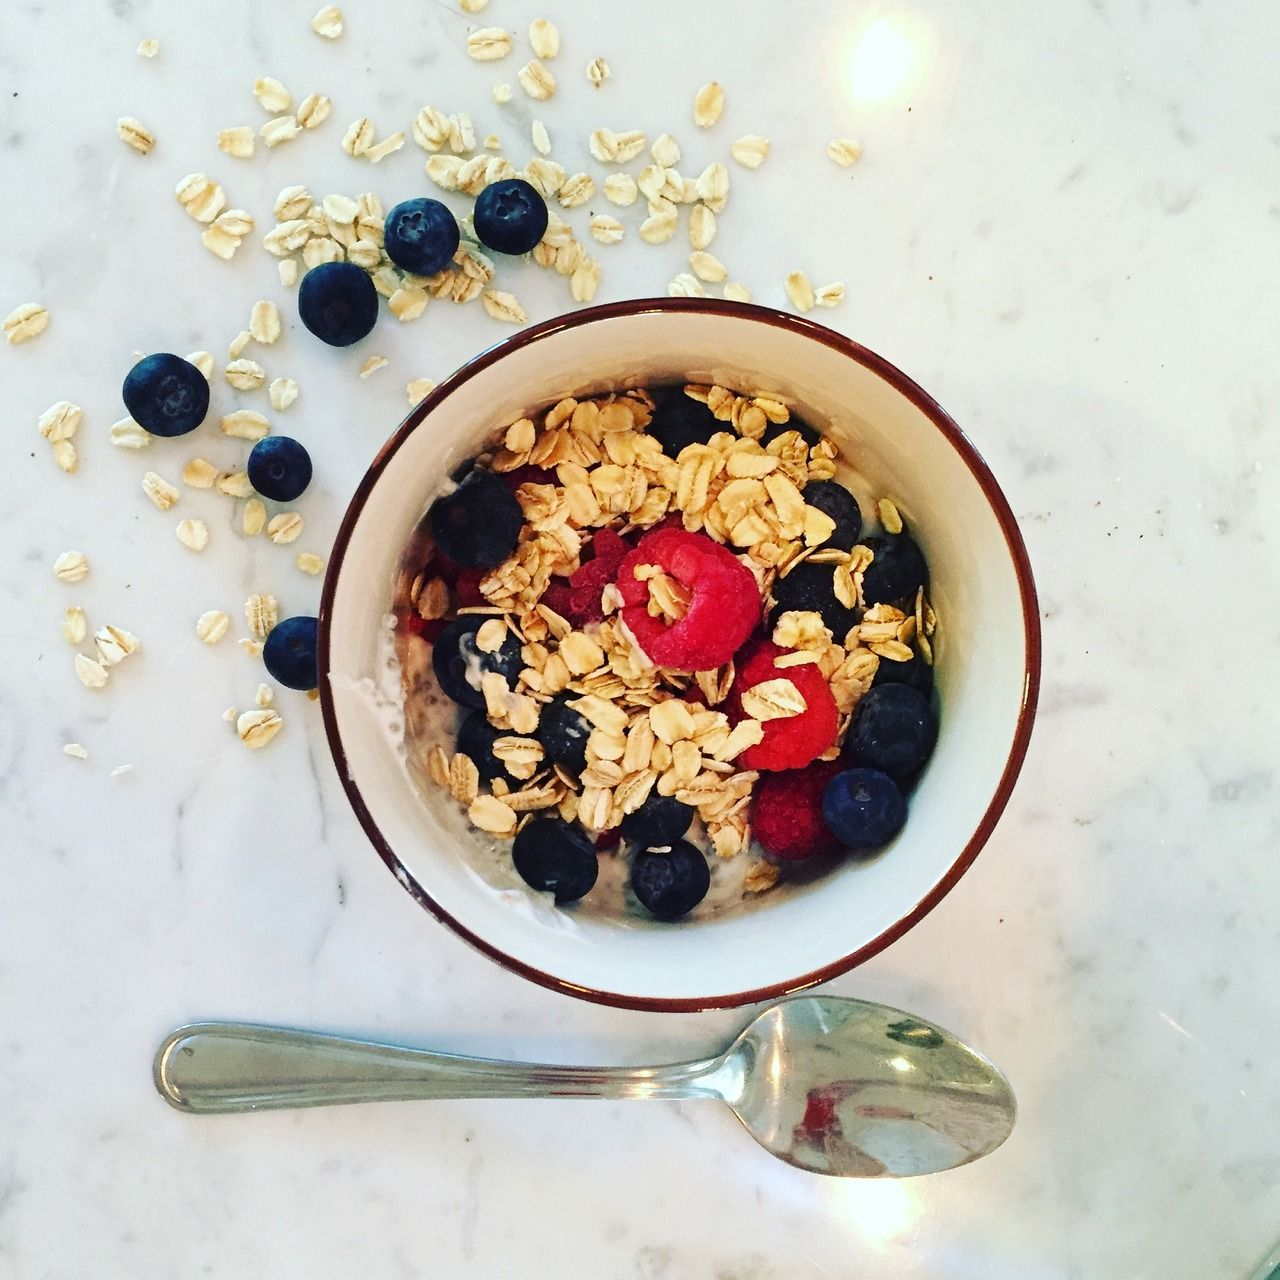 The Best Quinoa Breakfast The Kids Can't Get Enough Of http://tobesimplyhappy.com/the-best-quinoa-breakfast-the-kids-cant-get-enough-of/